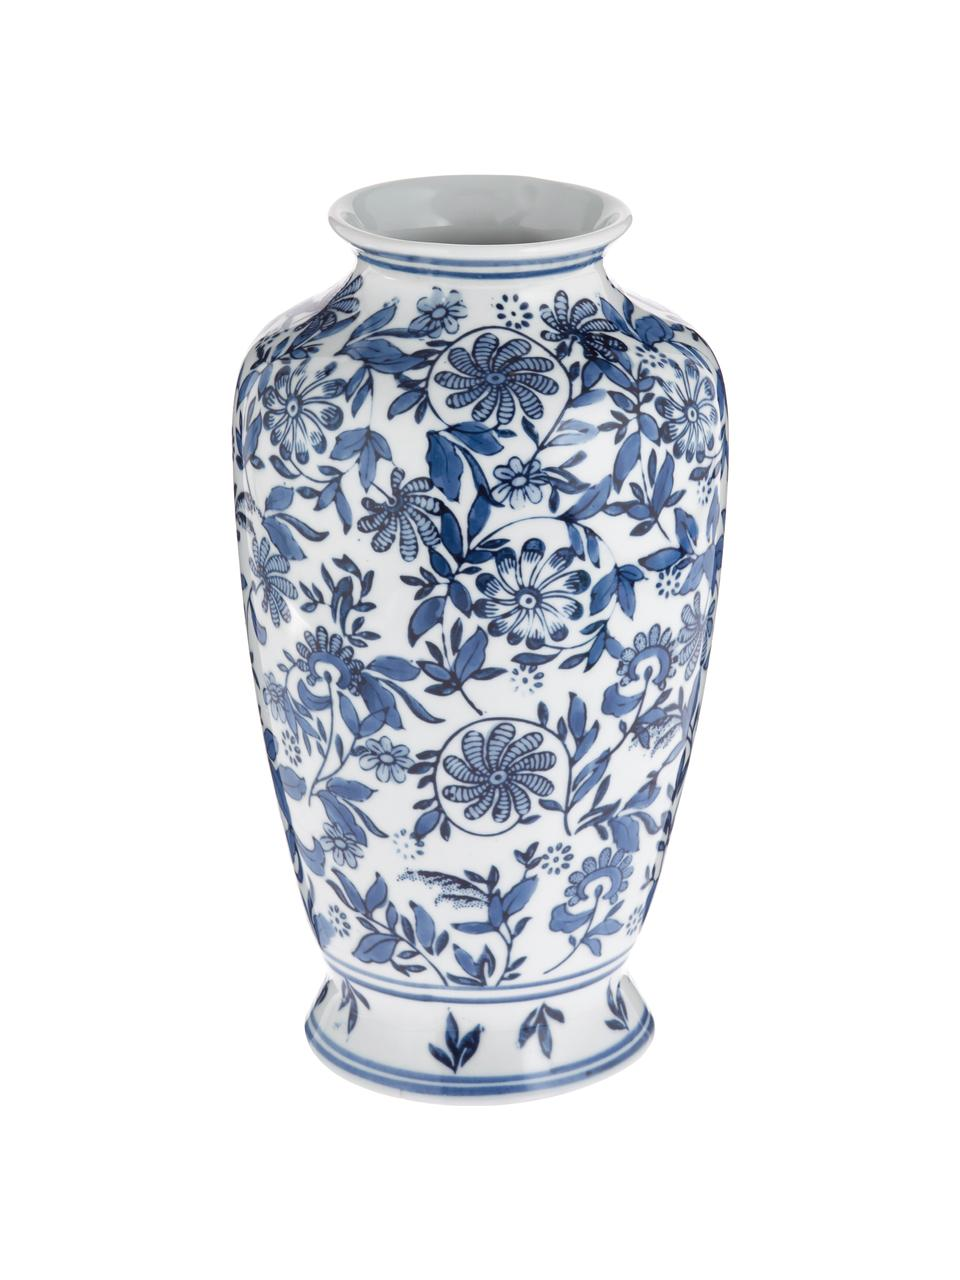 Vaso decorativo in porcellana Lin, Porcellana non impermeabile, Blu, bianco, Ø 16 x Alt. 31 cm